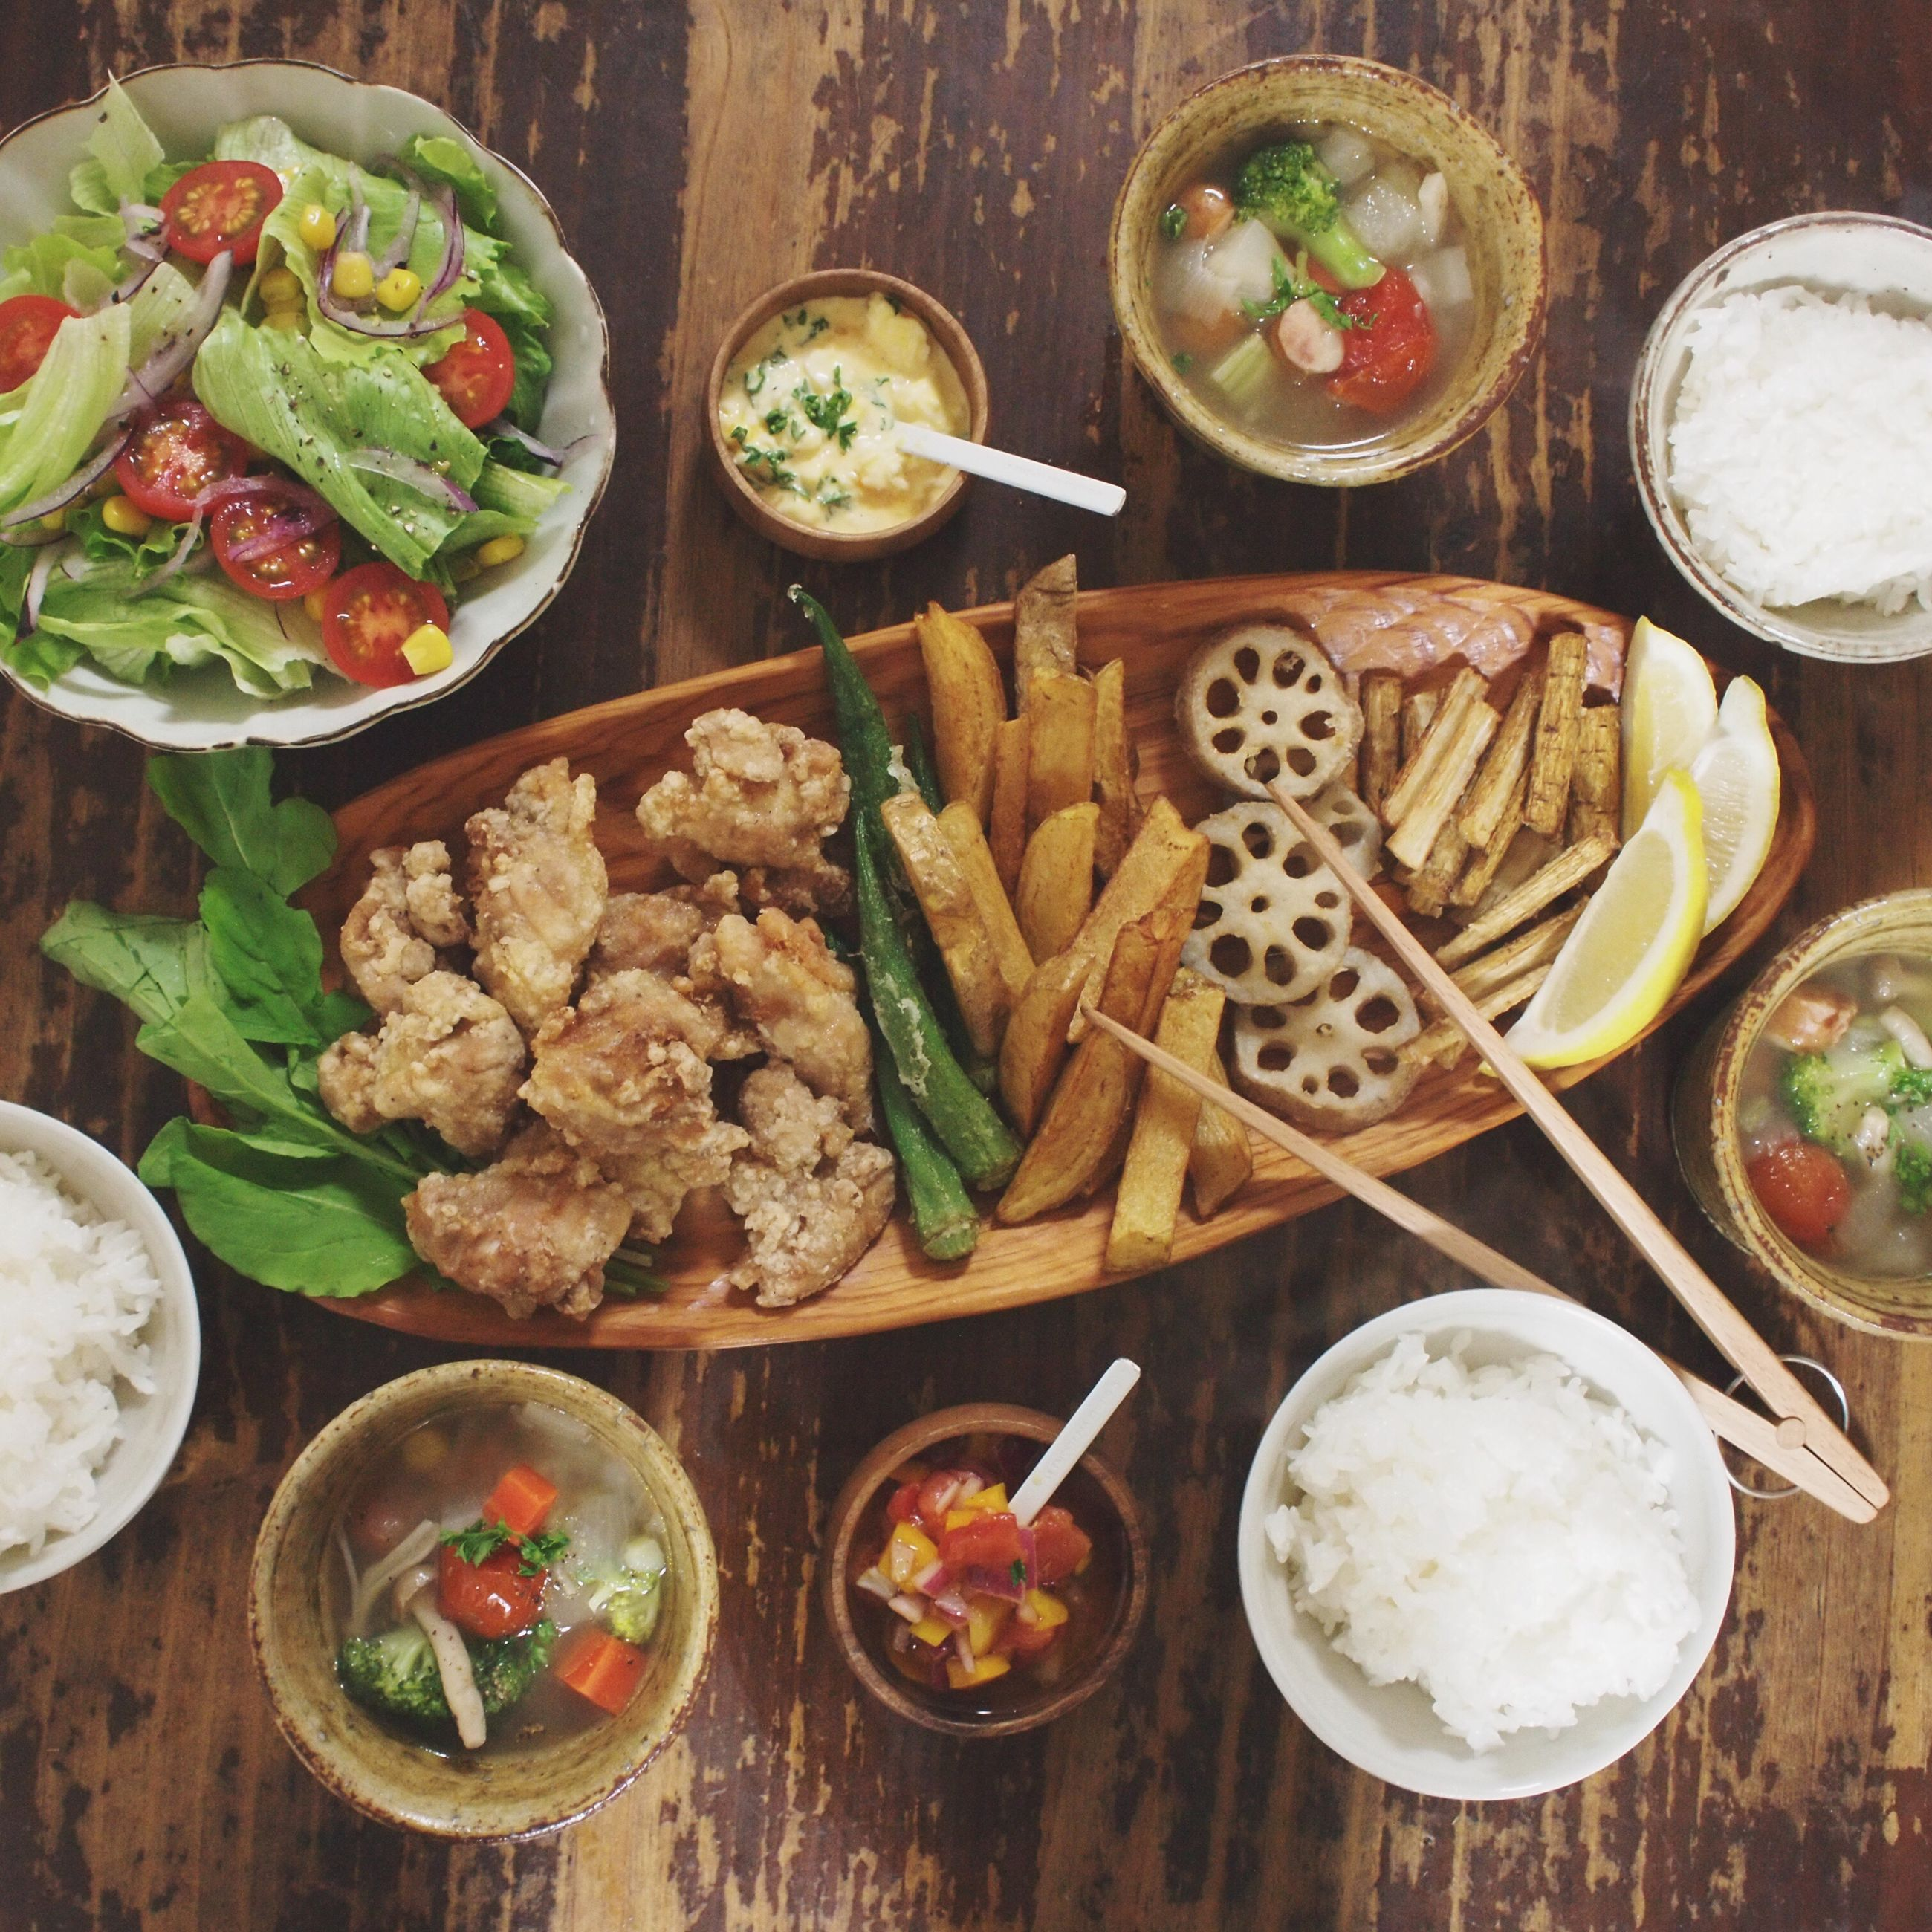 food and drink, food, freshness, indoors, ready-to-eat, healthy eating, table, plate, still life, meal, high angle view, variation, bowl, serving size, vegetable, directly above, meat, salad, served, seafood